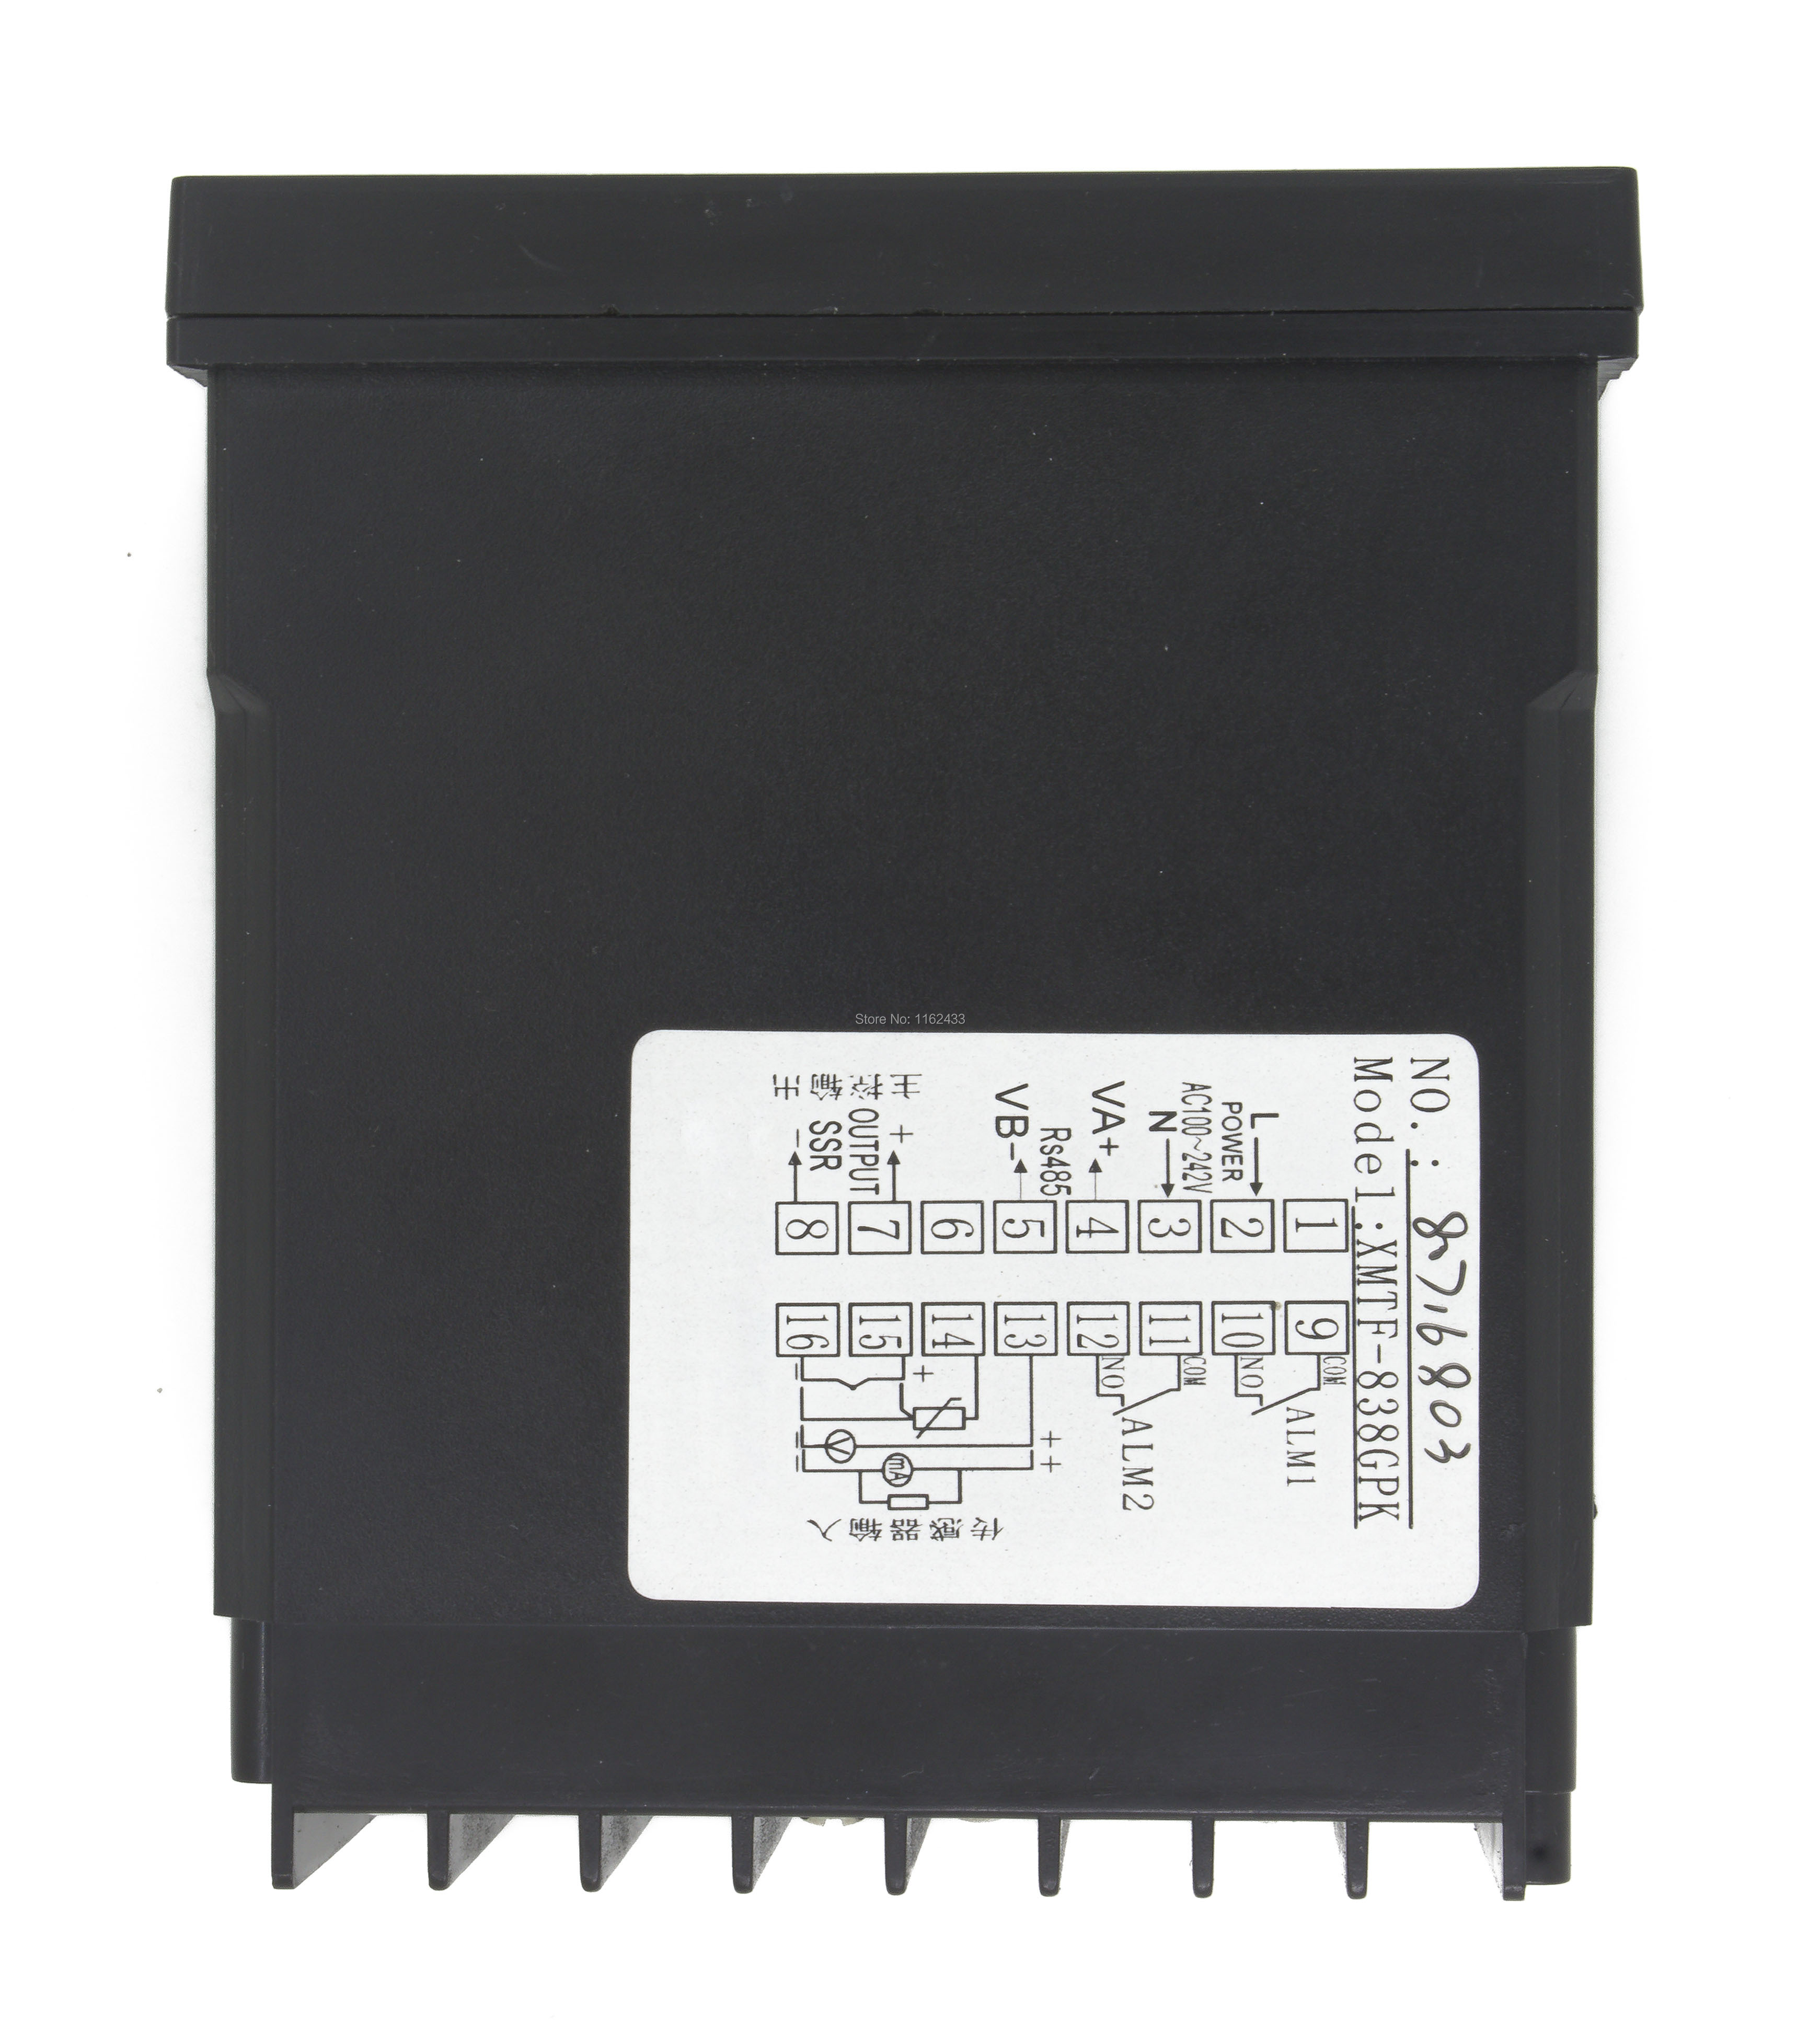 xmtf 8 rs485 modbus interface ramp soak digital temperature controller relay ssr 0 22ma scr output in temperature instruments from tools on aliexpress com  [ 3482 x 3899 Pixel ]